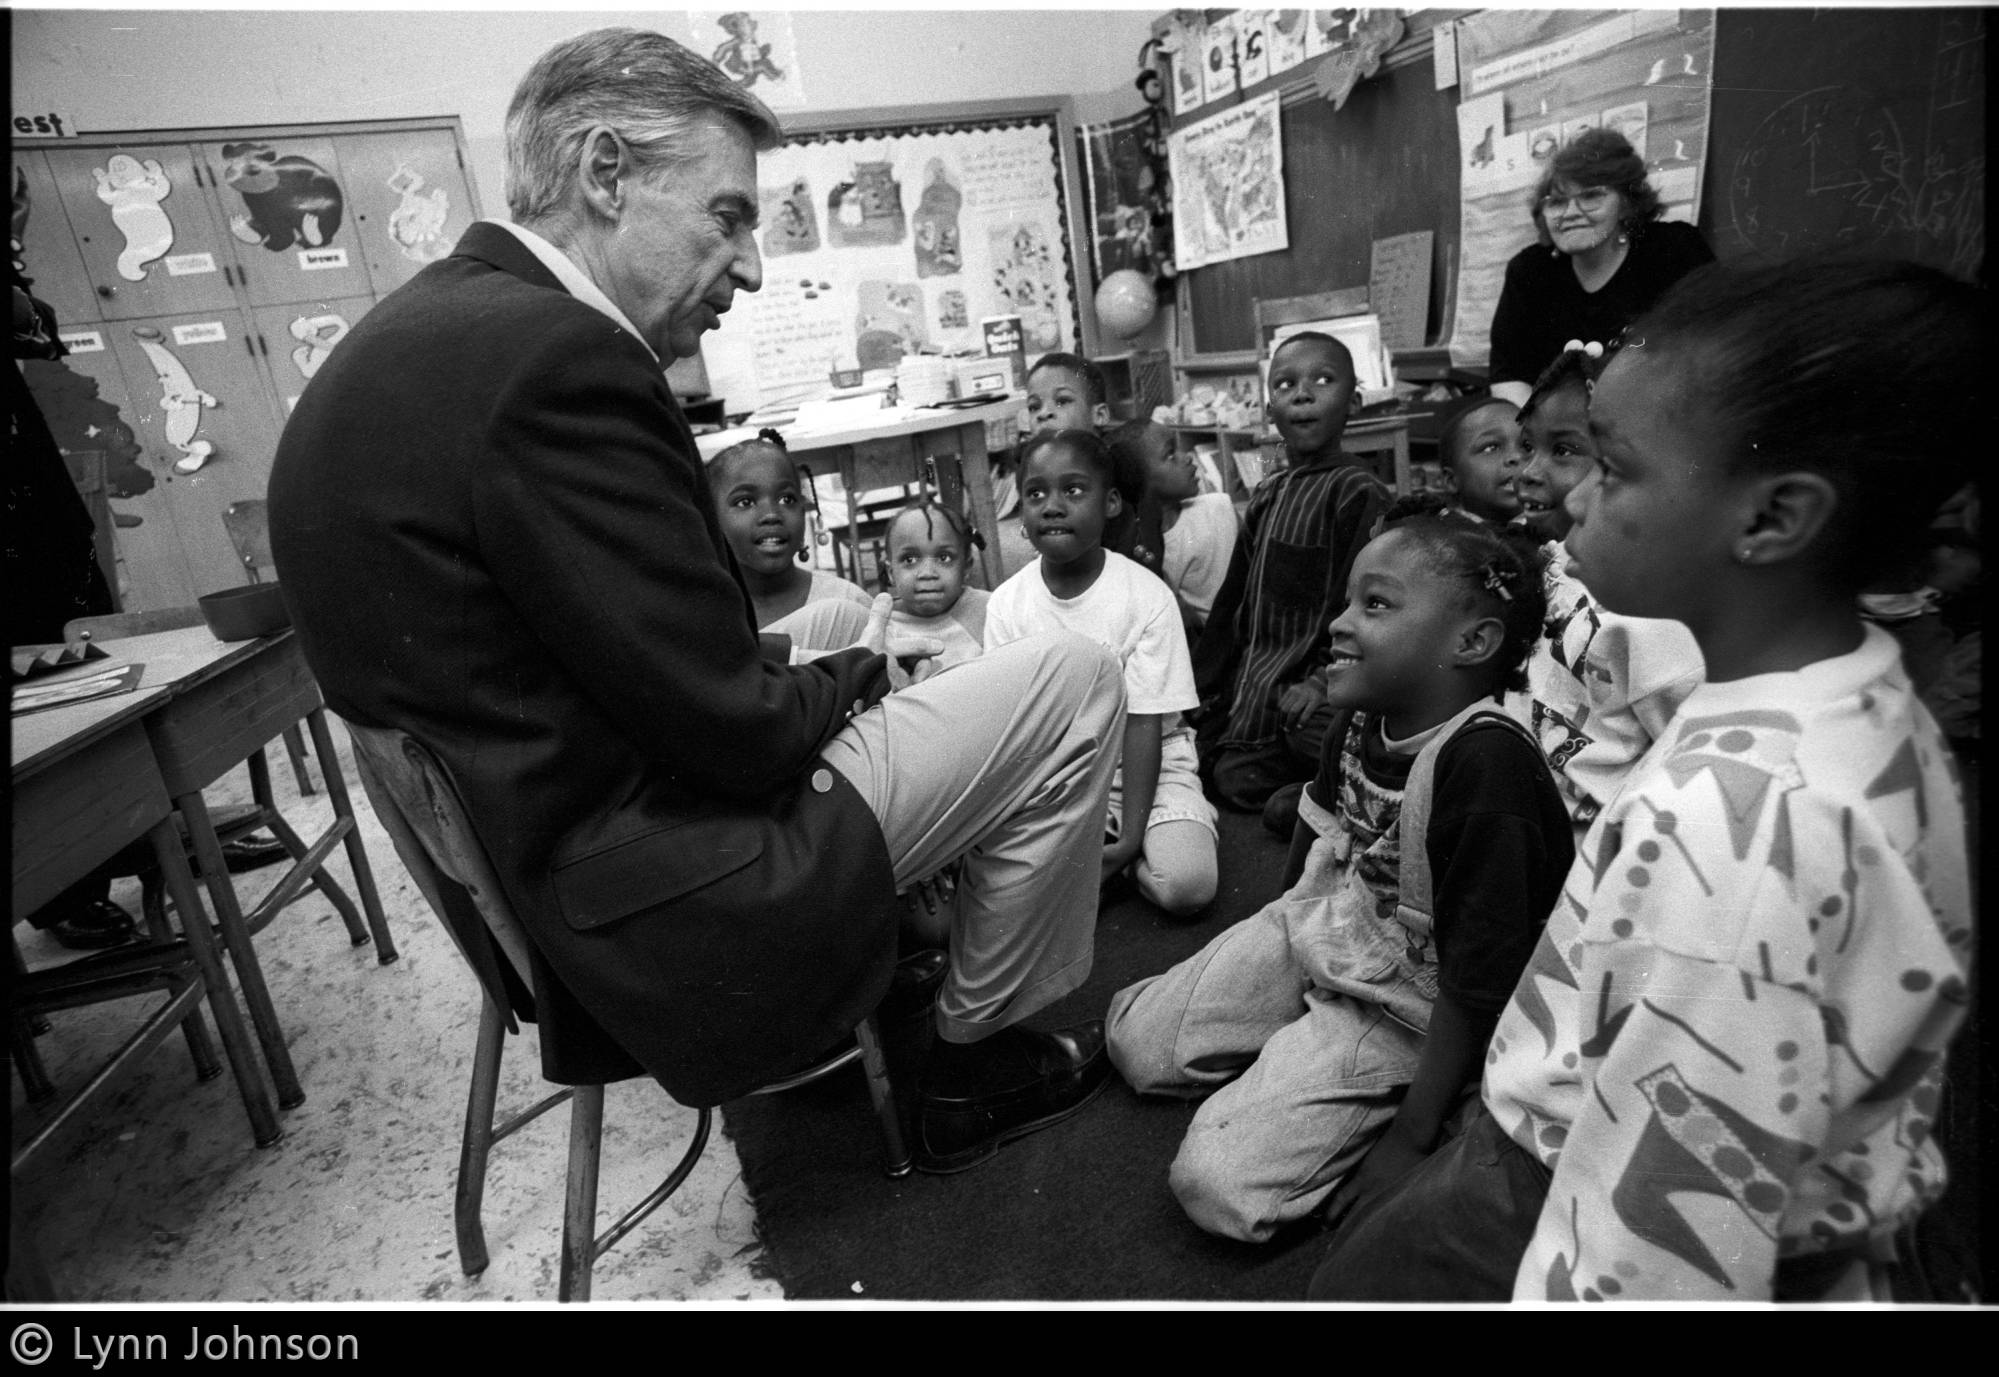 Lynn Johnson photograph of Fred Rogers speaking with a group of school children